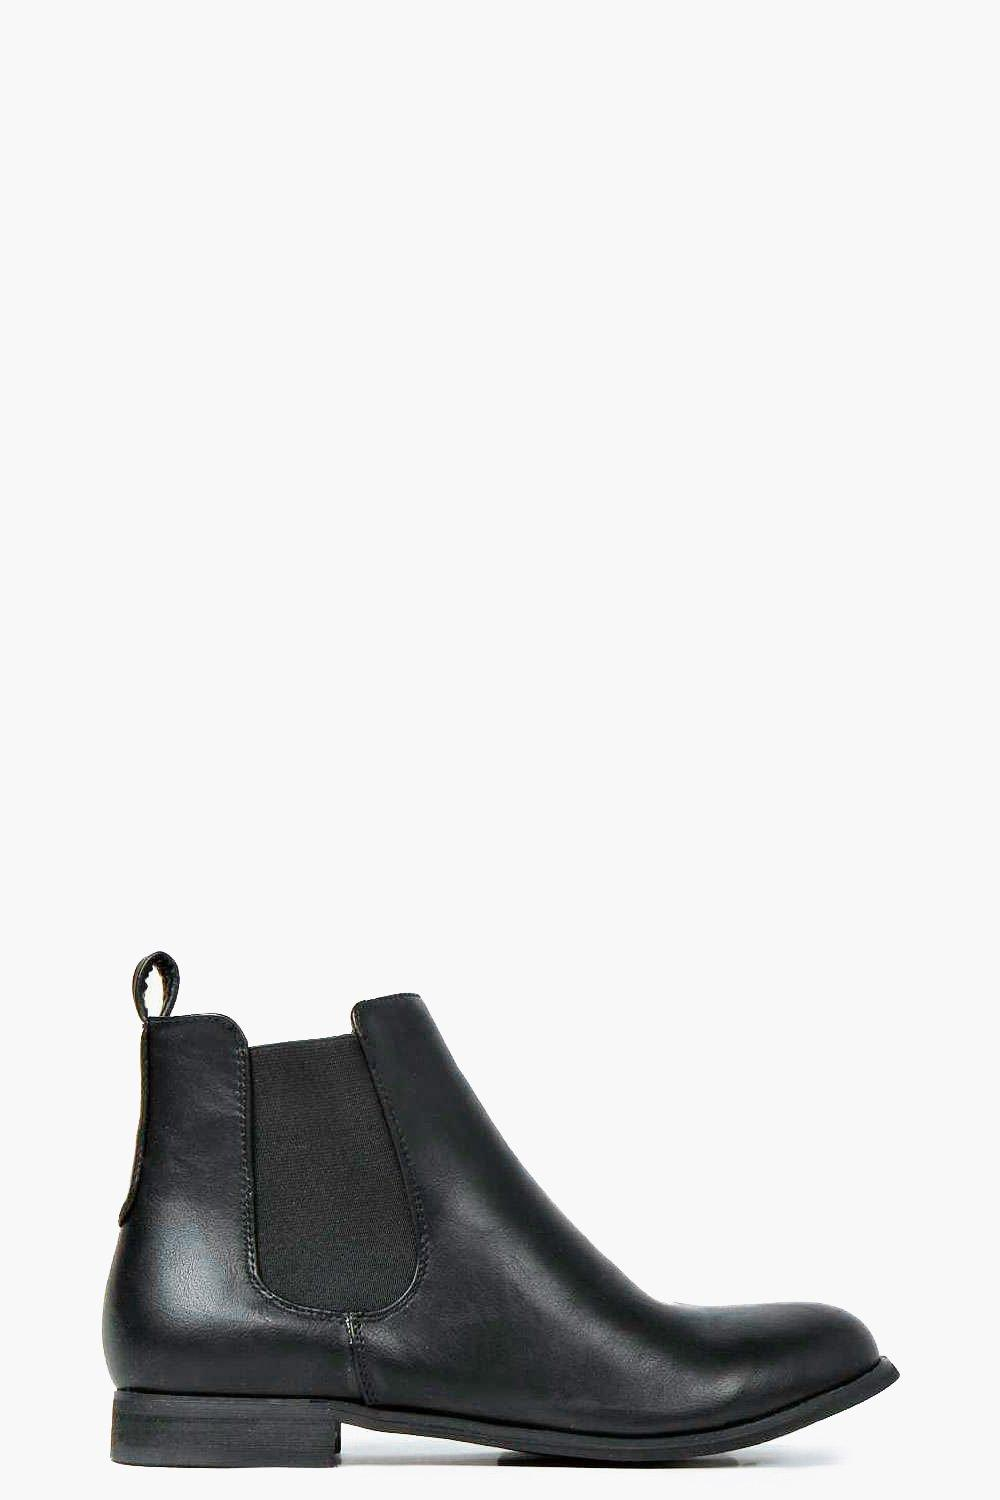 Popular In Our Advice Column, Ask The Strategist, We Take Your Most Burning Shopping Questions  If Youre 100 Percent Against Spending More Than $75, These Chooka Bainbridge Chelsea Boots Are Pretty Similar They Also Seem A Bit Less